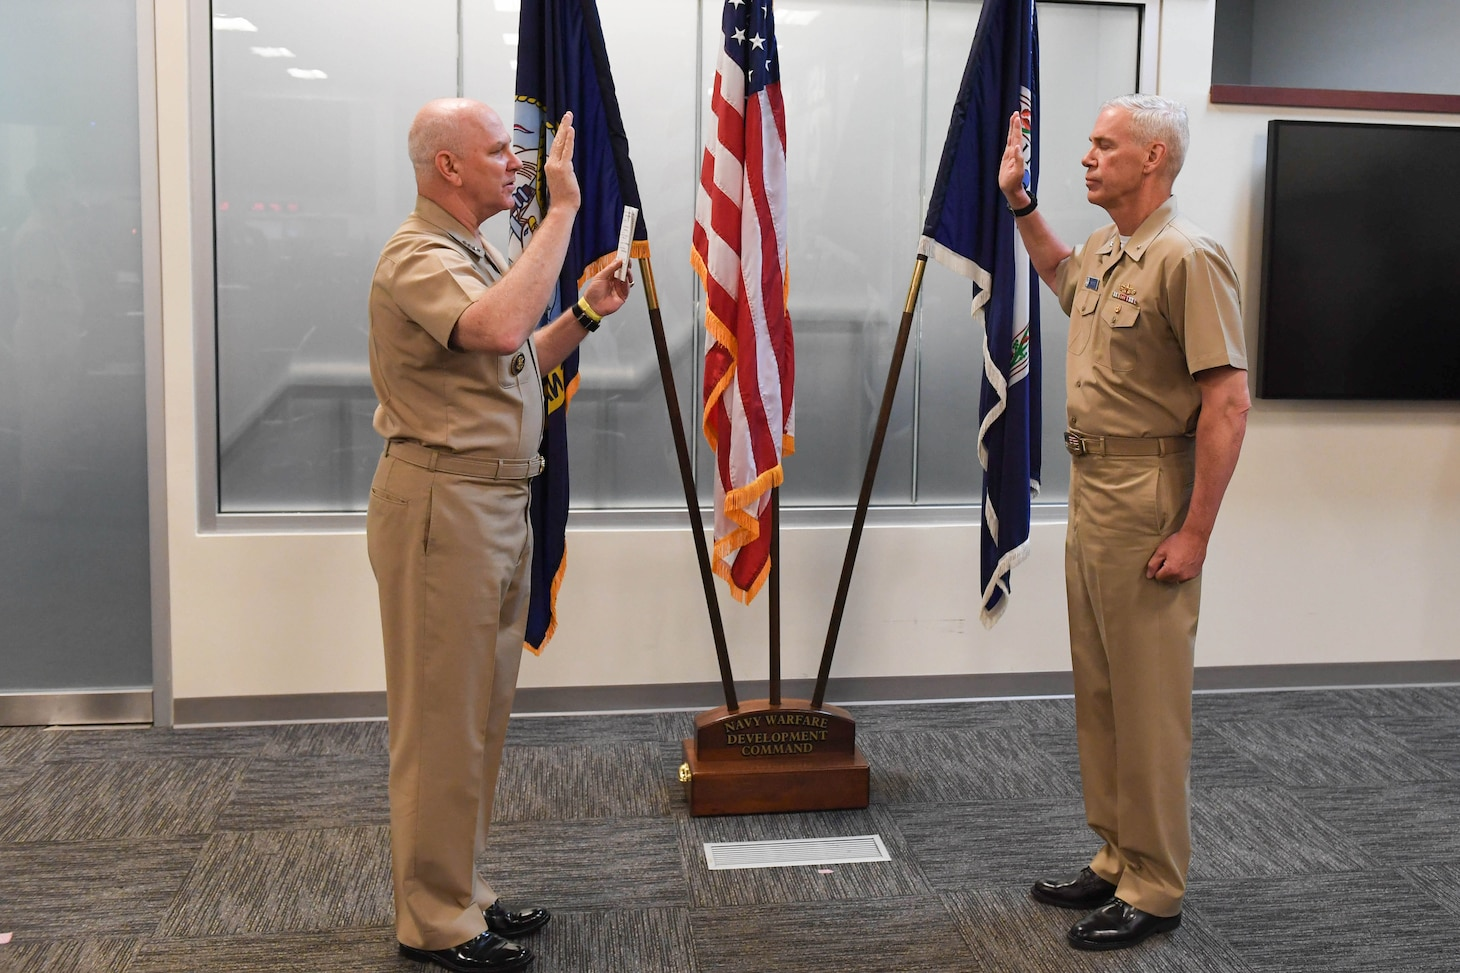 Admiral Christopher W. Grady, left, U.S. Fleet Forces commander, promotes Rear Admiral Fred I. Pyle in a frocking ceremony at Navy Warfare Development Command. The promotion of Pyle, NWDC commander, will be effective August 1, 2020. He is a native of McAlisterville, Pa., and a 1990 graduate of Pennsylvania State University.  Frocking is the Navy's practice of allowing promotion selectees to wear the insignia of the higher grade before the official date of promotion.  For an expanded discussion on the origins of this practice, please visit the Naval History and Heritage Command at https://www.history.navy.mil/research/library/online-reading-room/title-list-alphabetically/f/frocking.html. (U.S. Navy photo by MC1 Jason Pastrik, NWDC/Released)